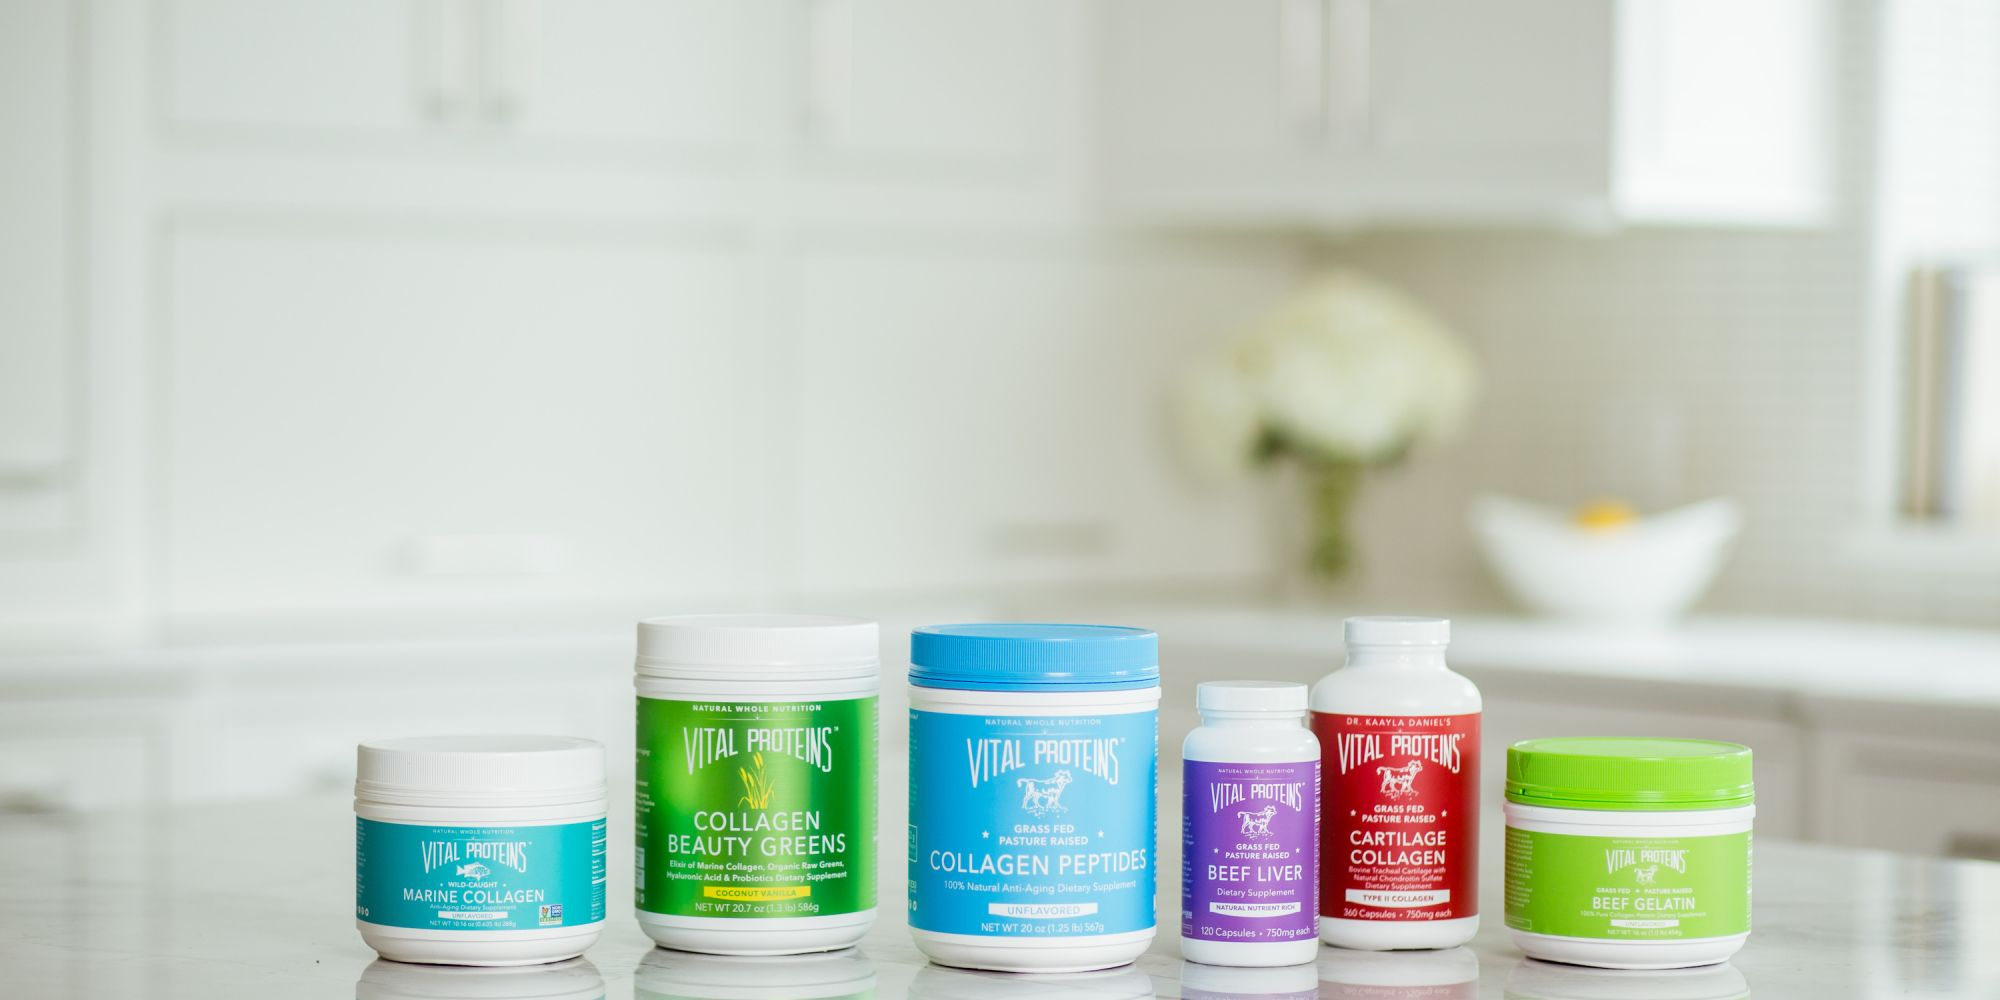 Vital Proteins Plans Collagen Product Expansion With Funding From CAVU Venture Partners